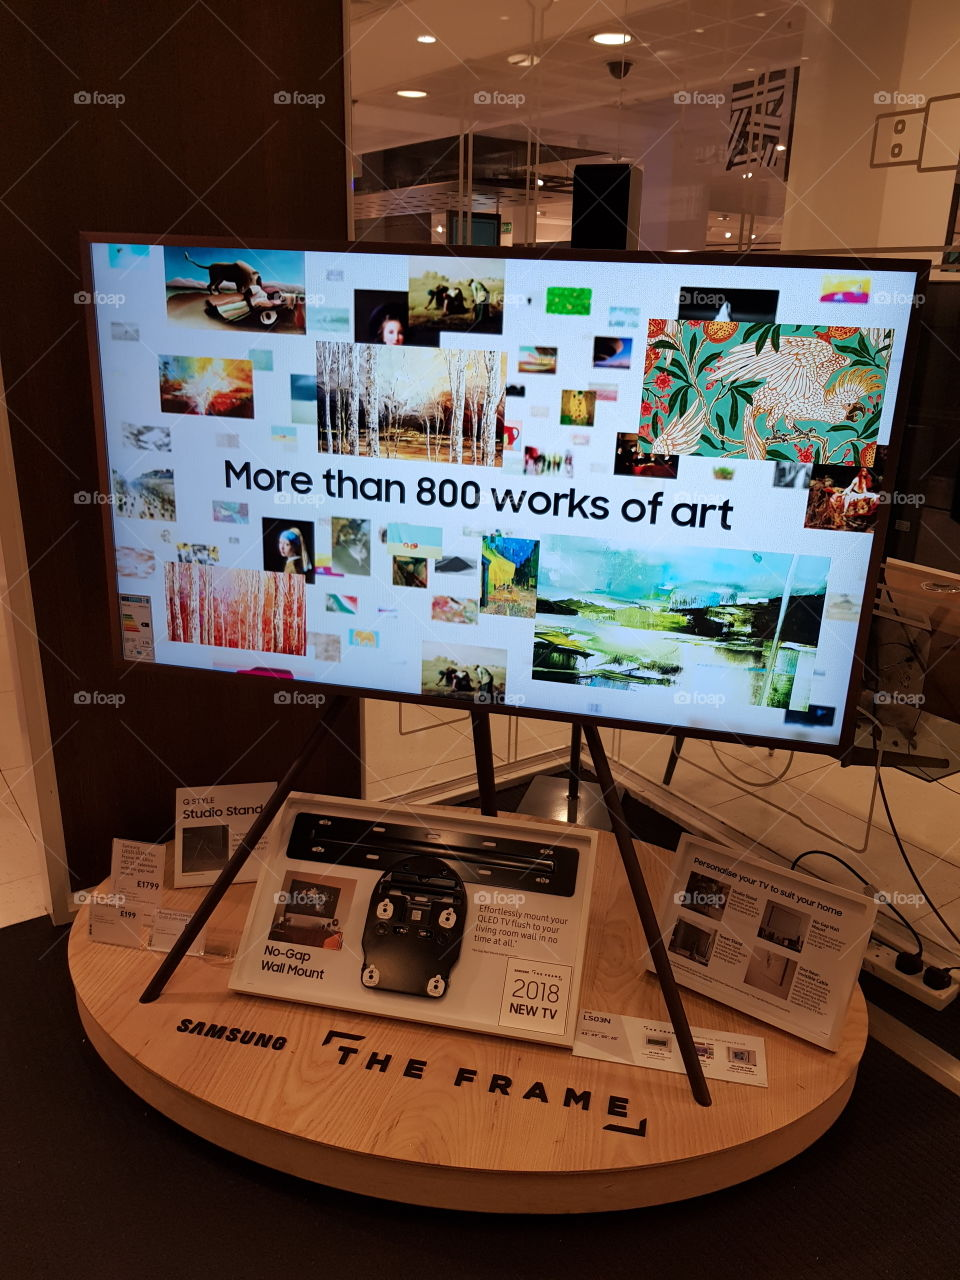 Samsung The Frame TV with more than 800 works of art display at Peter Jones Sloane square Chelsea King's road